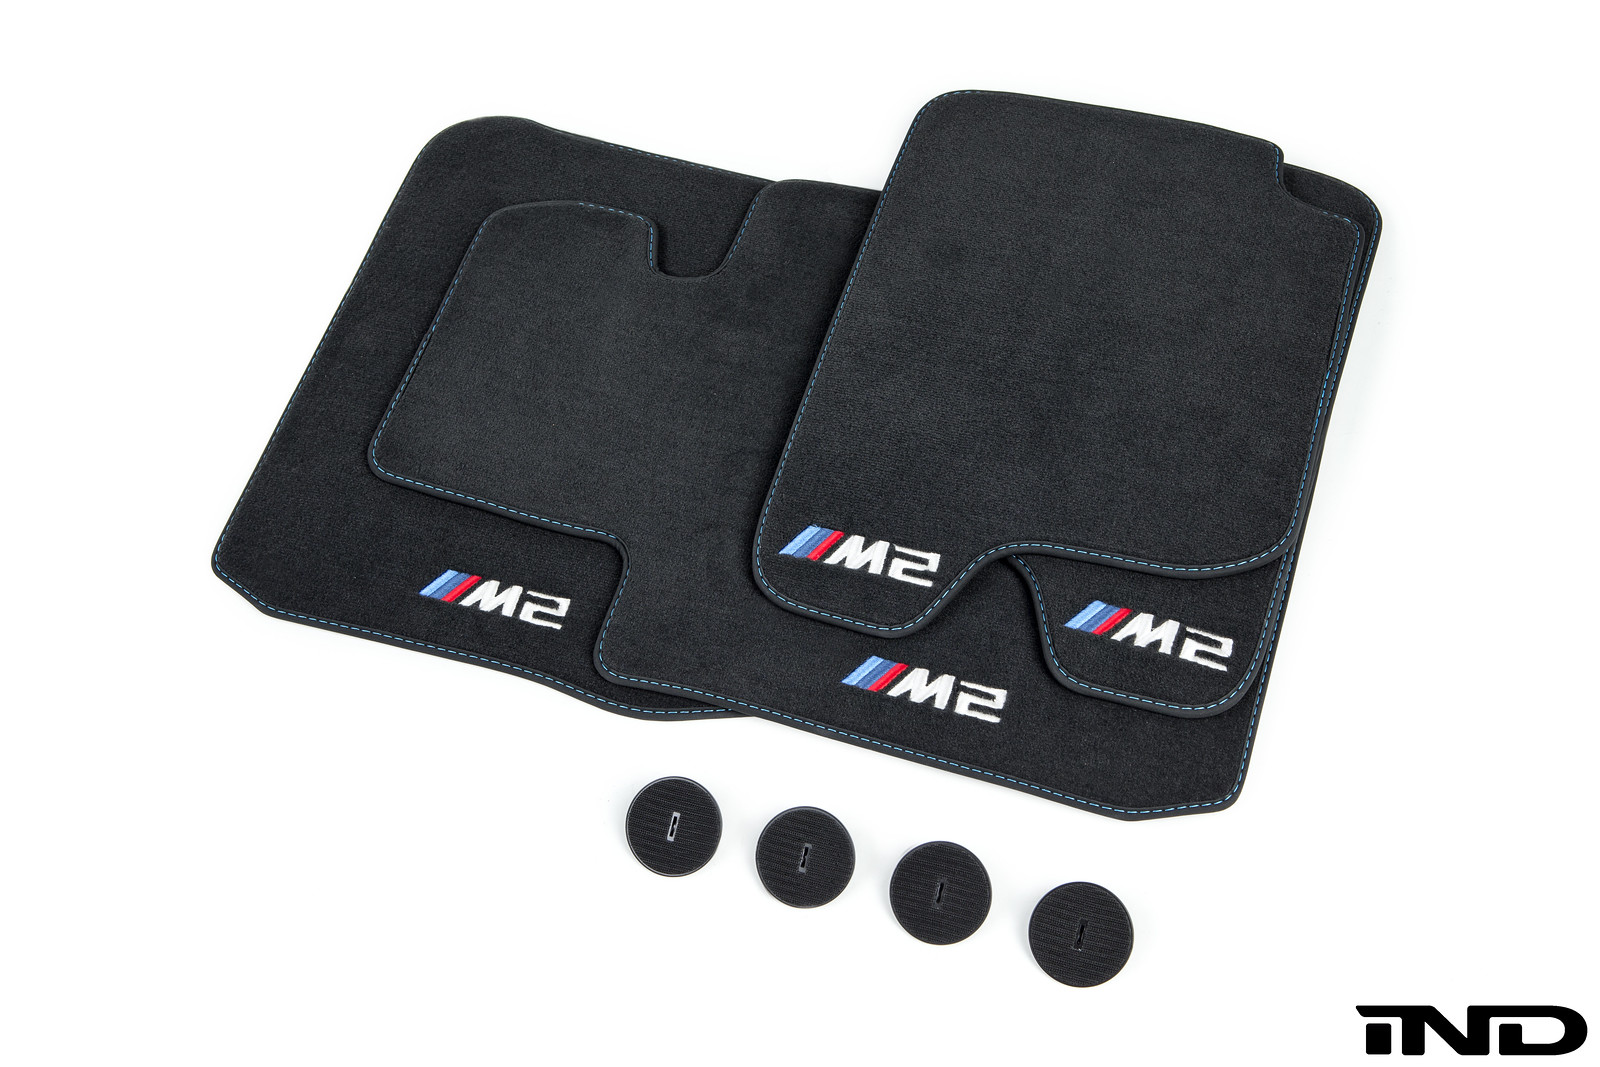 Floor mats embroidered - The New F87 M2 Lack The Traditional M Embroidered Floor Mats Typically Seen In M Cars Of Years Past We At Ind Now Bring Our Ever Popular Custom Mat